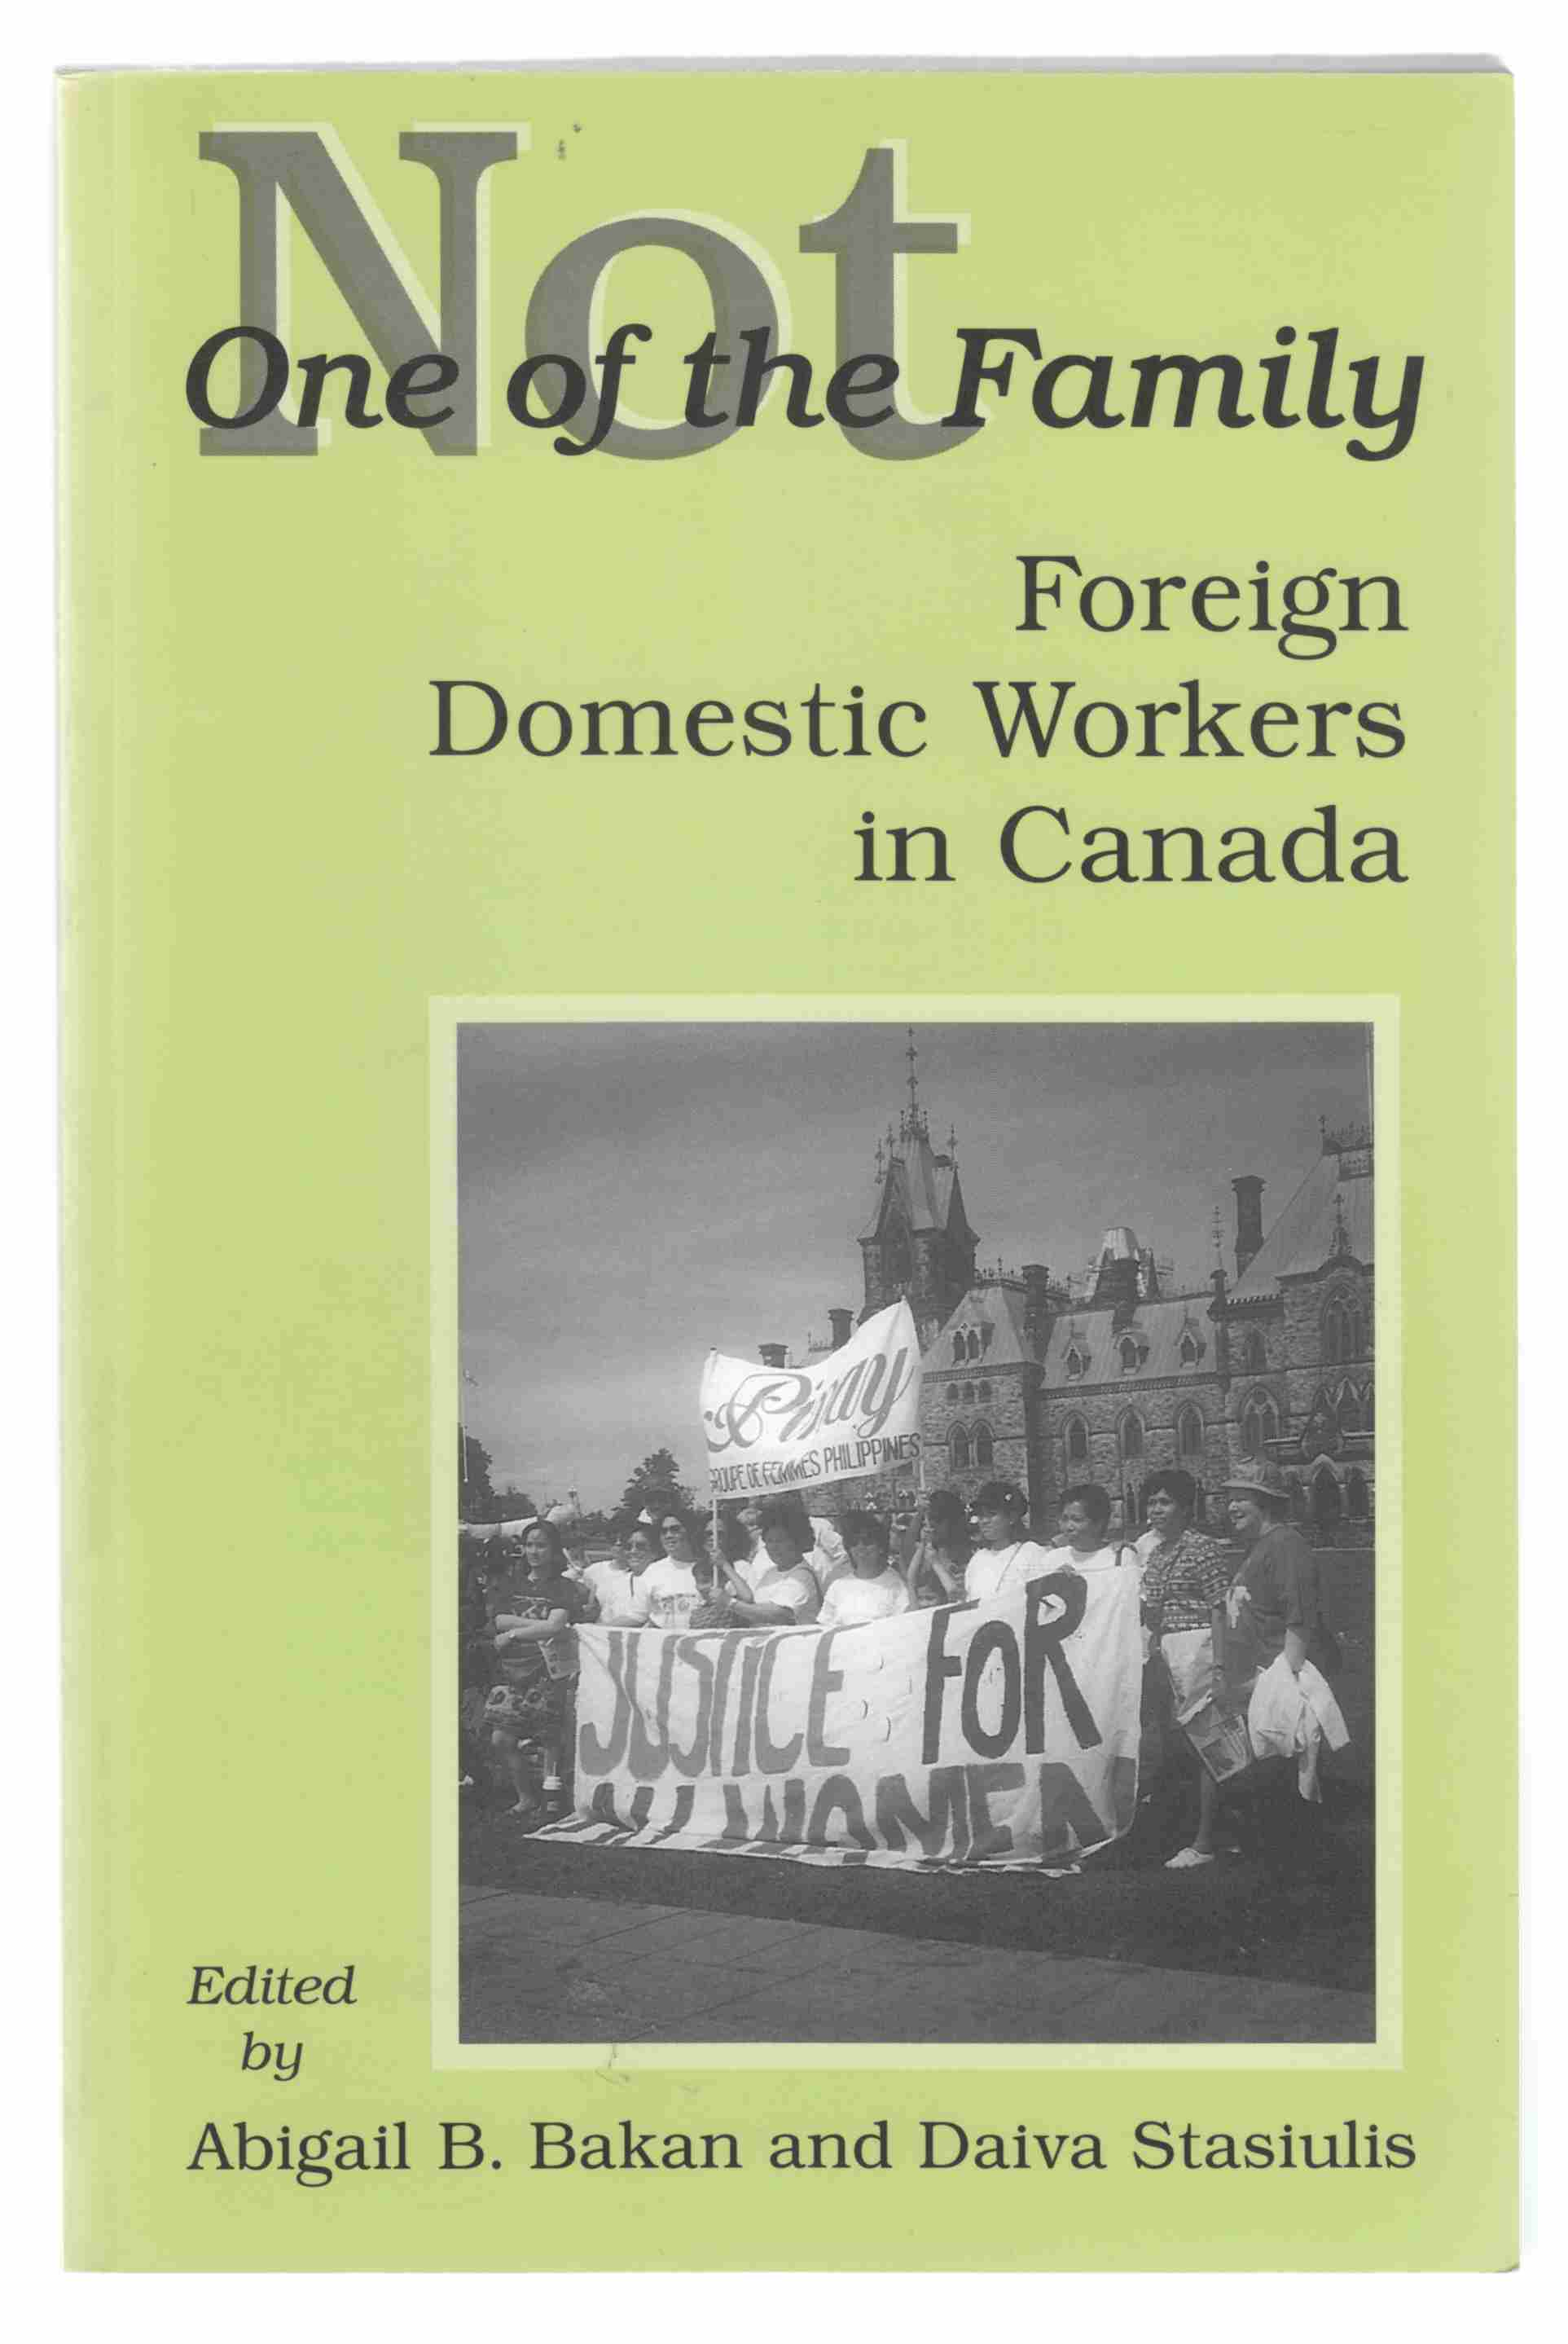 Image for Not One of the Family Foreign Domestic Workers in Canada